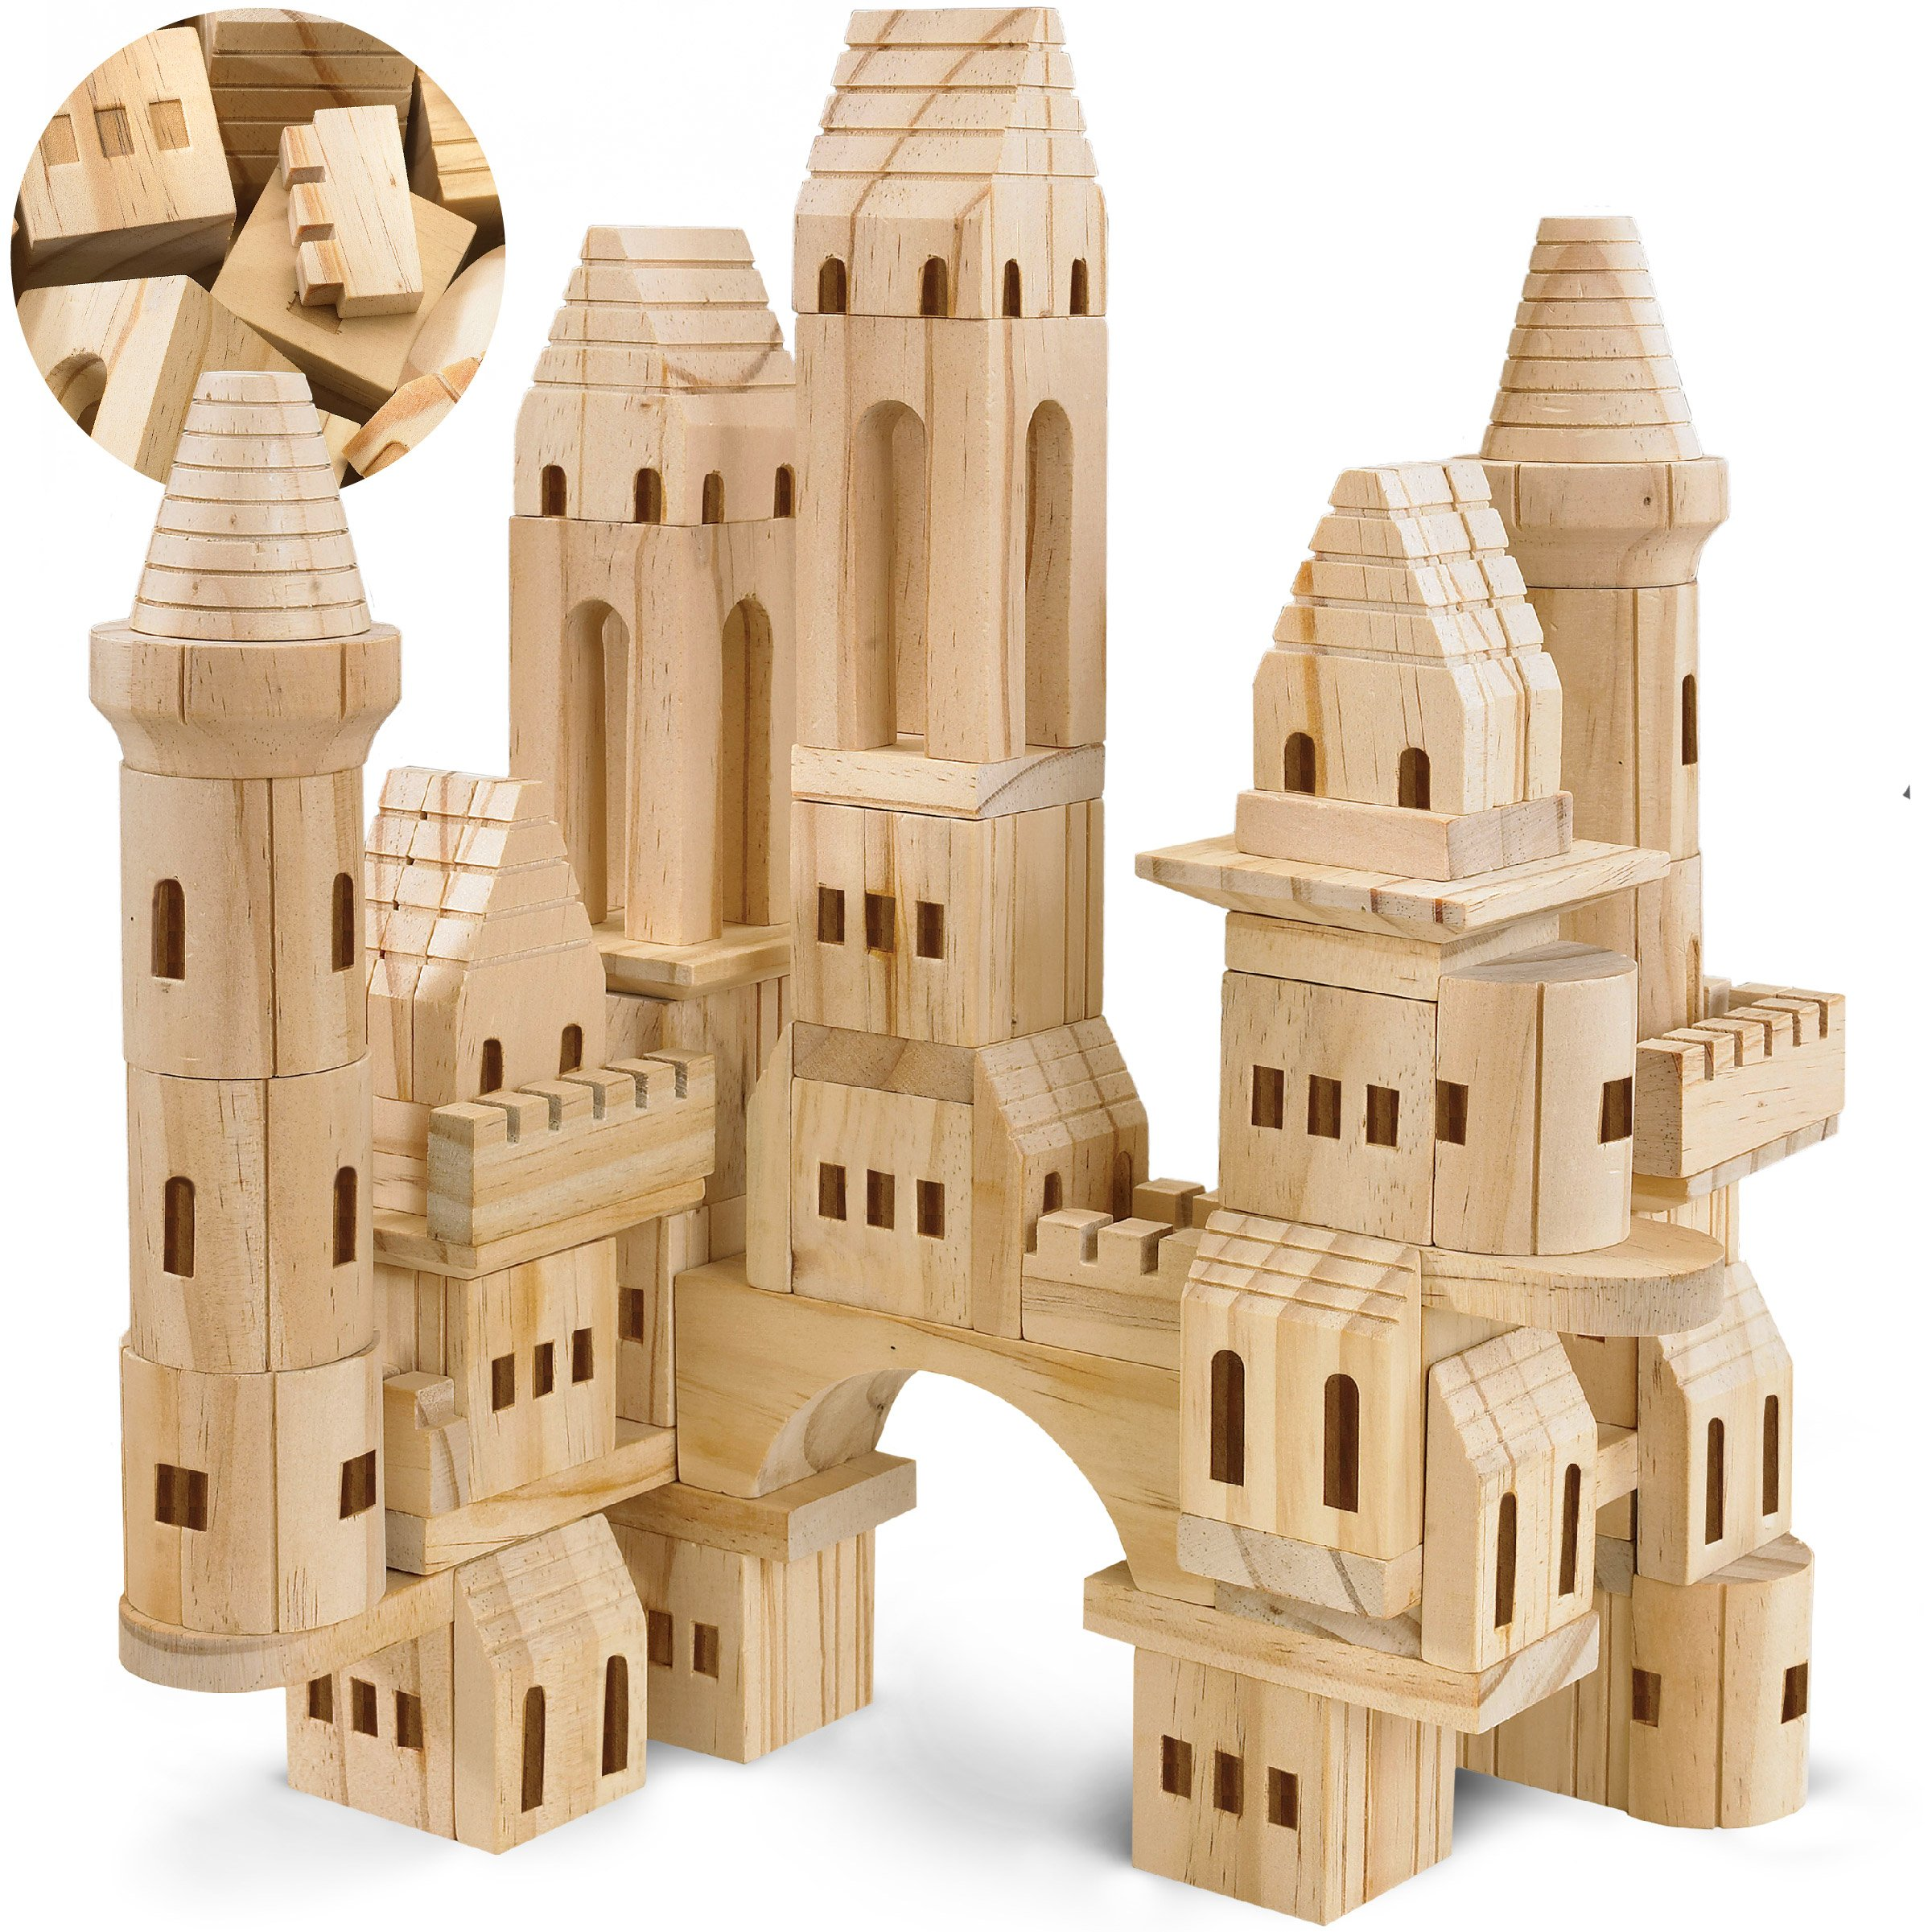 FAO Schwarz {75 Piece Set} Wooden Castle Building Blocks Set Toy Solid Wood Block Playset Kit for Kids, Toddlers, Boys, and Girls, Fantasy Medieval Knights and Princess Theme with Bridges and Arches